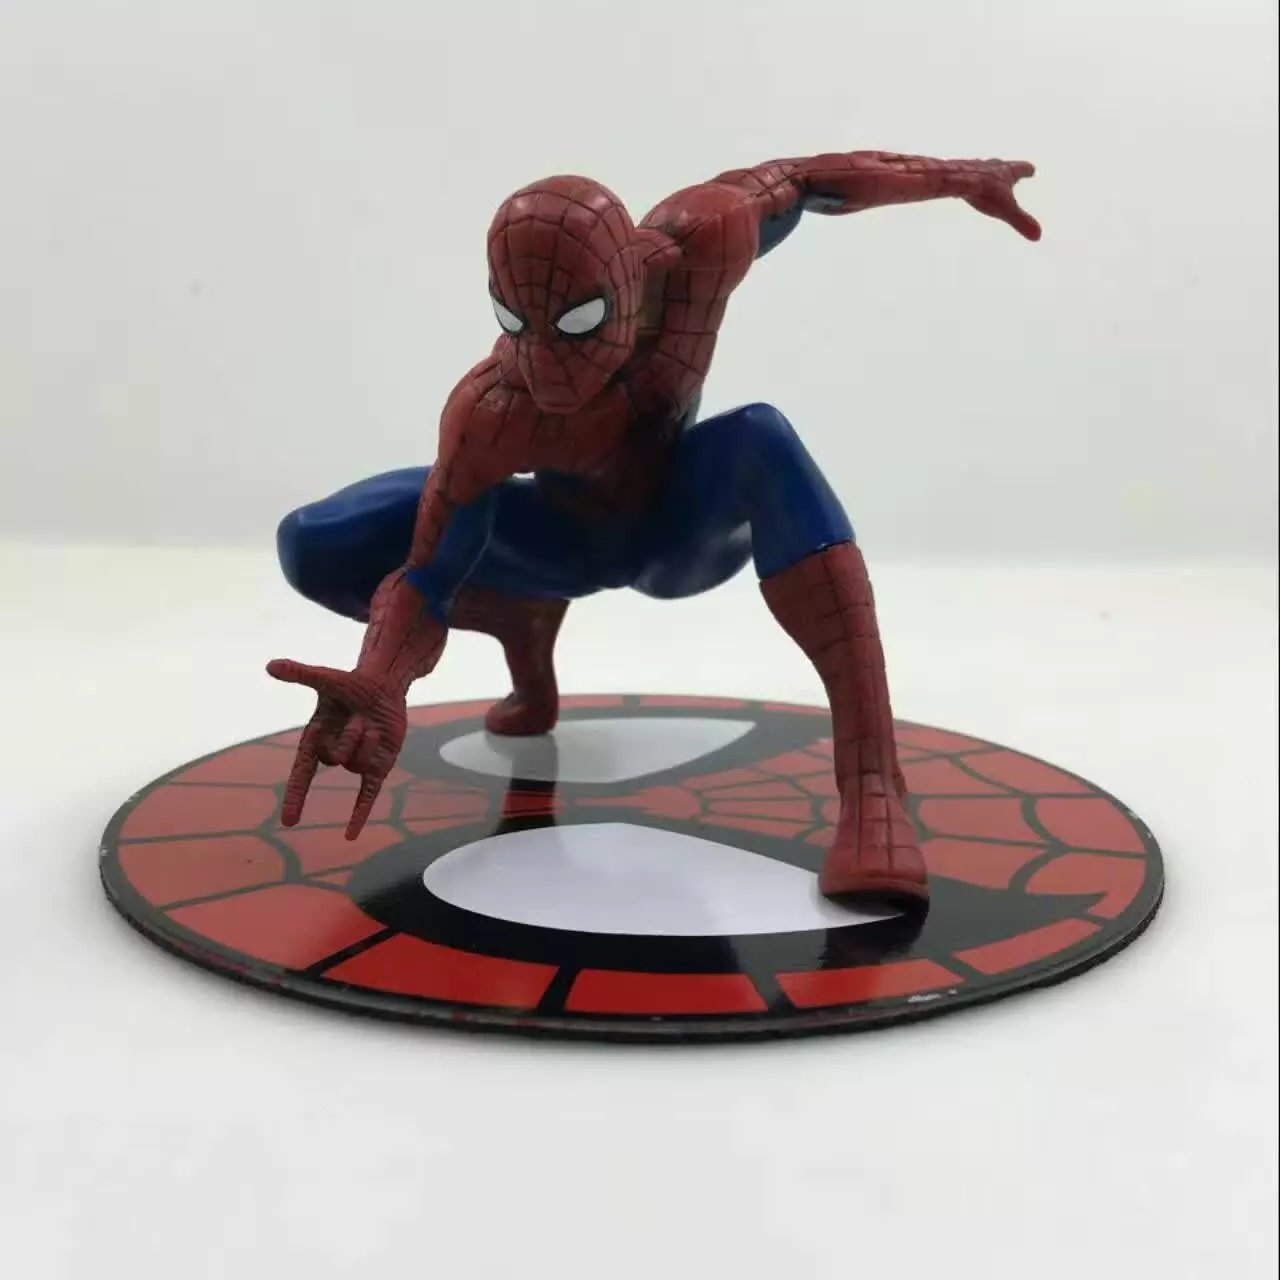 QICSYXJ Gift Marvel Superhero Action Figure Collection The Amazing Spider Man 12cm Squat Spiderman Model Decorations a season for fireflies